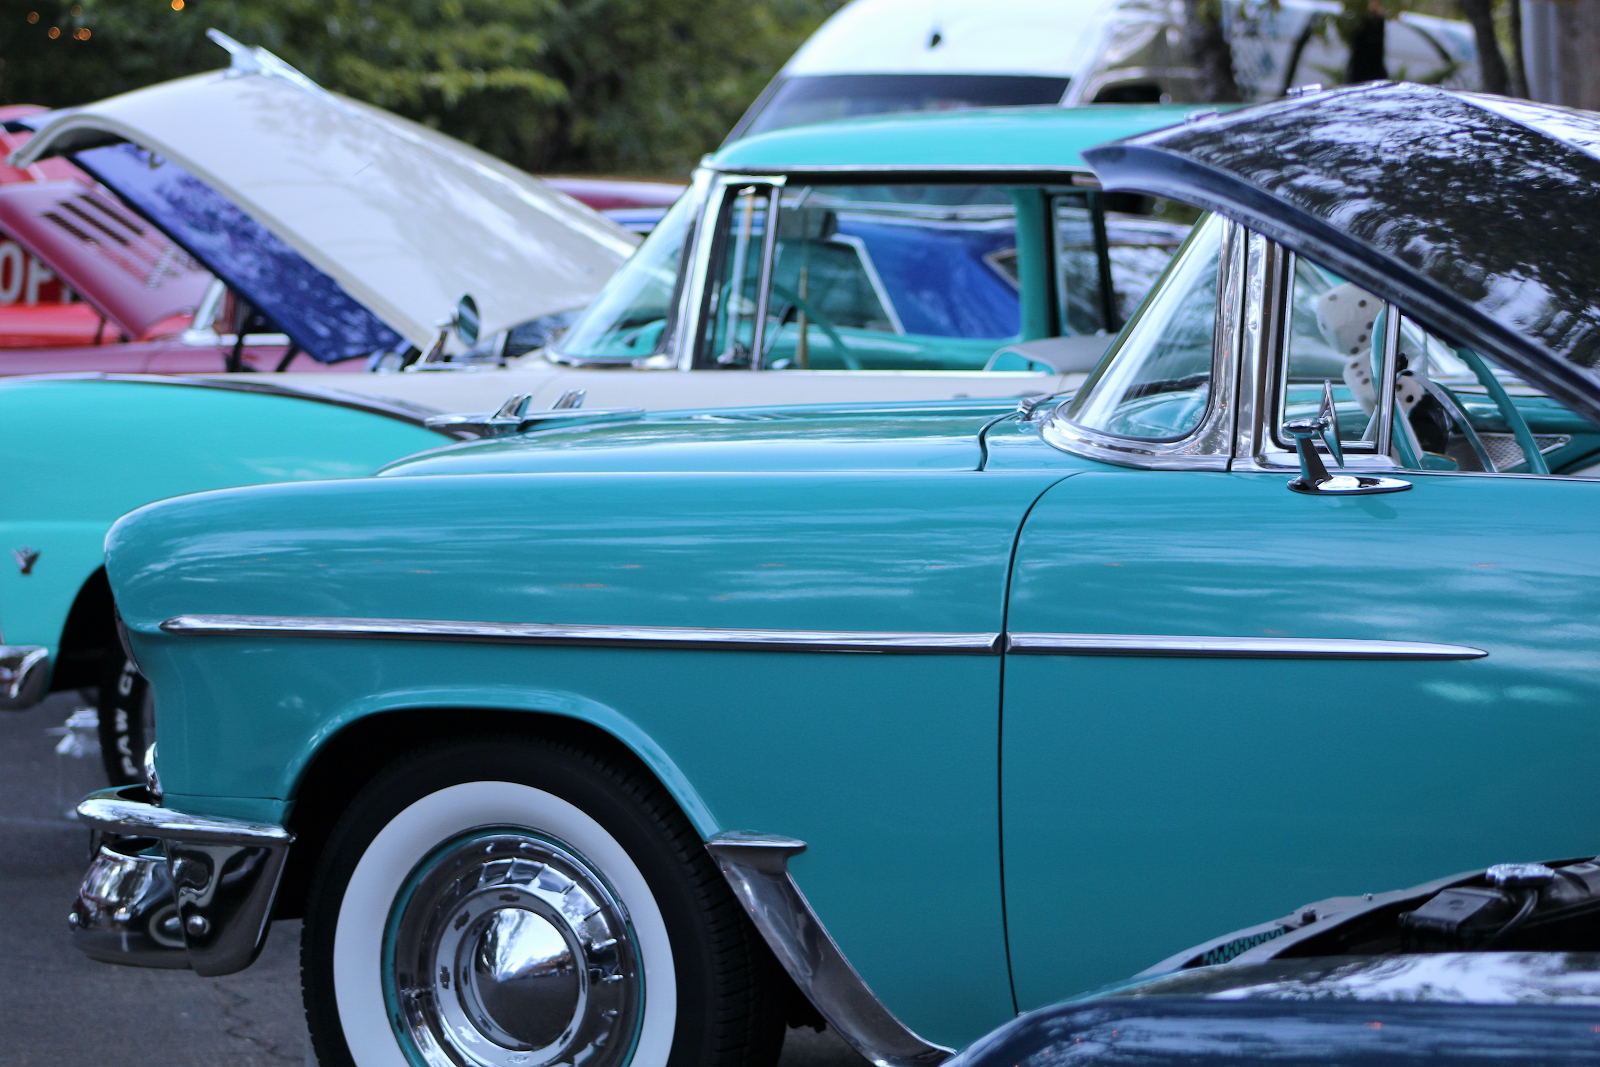 From Classic Car Shows to Product Launches, Tsasdi Resort is the perfect location for your special event!